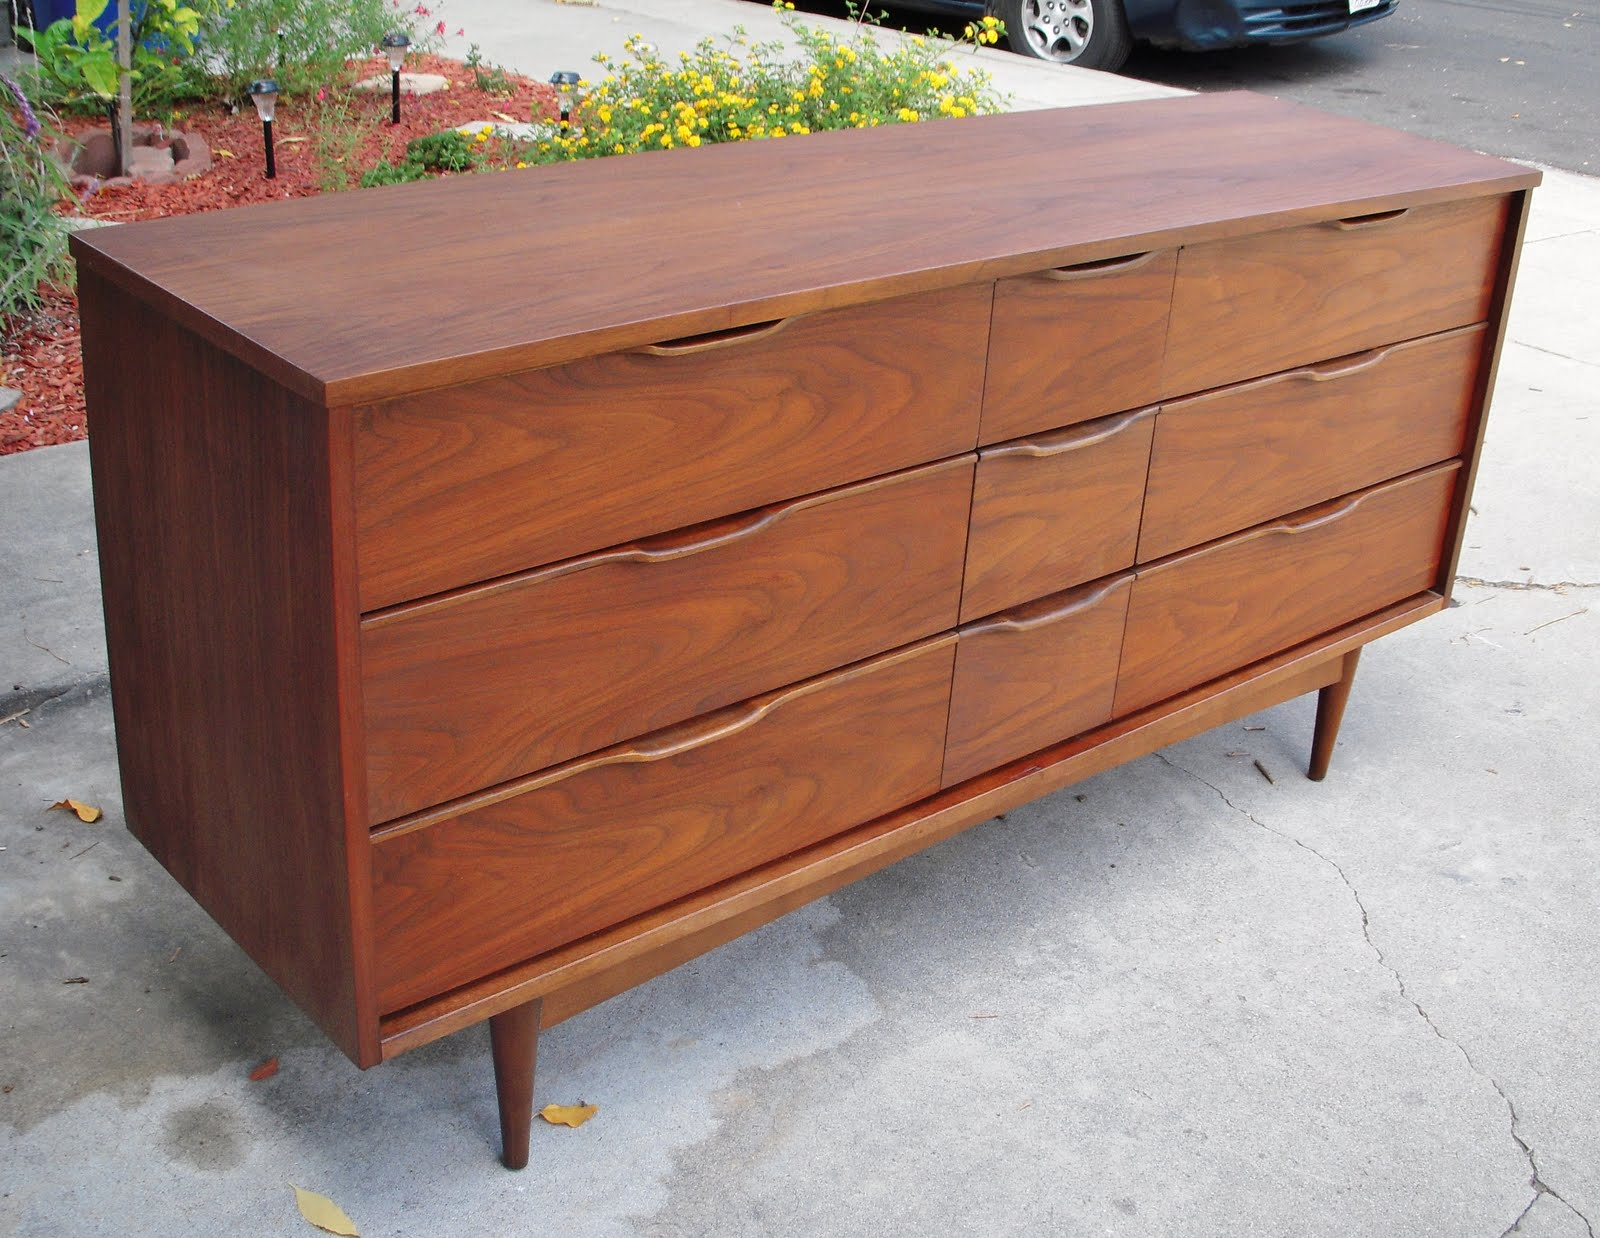 Charmant Sorry Sold....Mid Century Danish Modern Bedroom Set Dresser Credenza U0026  Matching Tall Chest Solid Wood